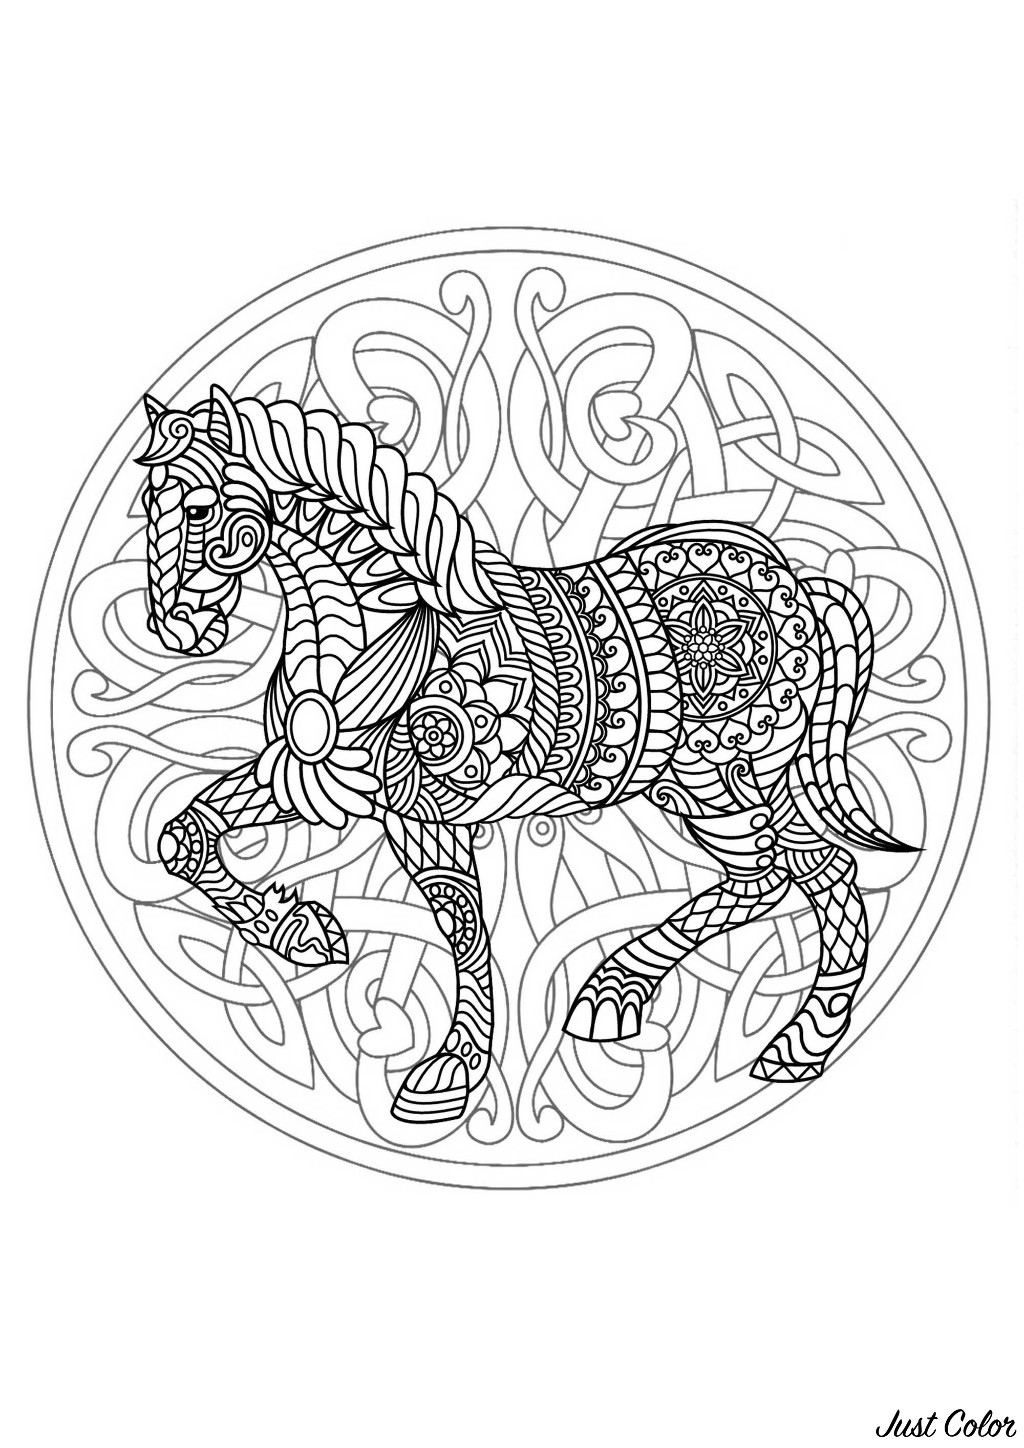 Horse added in a difficult Mandala. Prepare your pencils and pens to color this incredible Mandala coloring page with little details. It can sometimes be even more relaxing when coloring and passively listening to music : don't hesitate to do it !